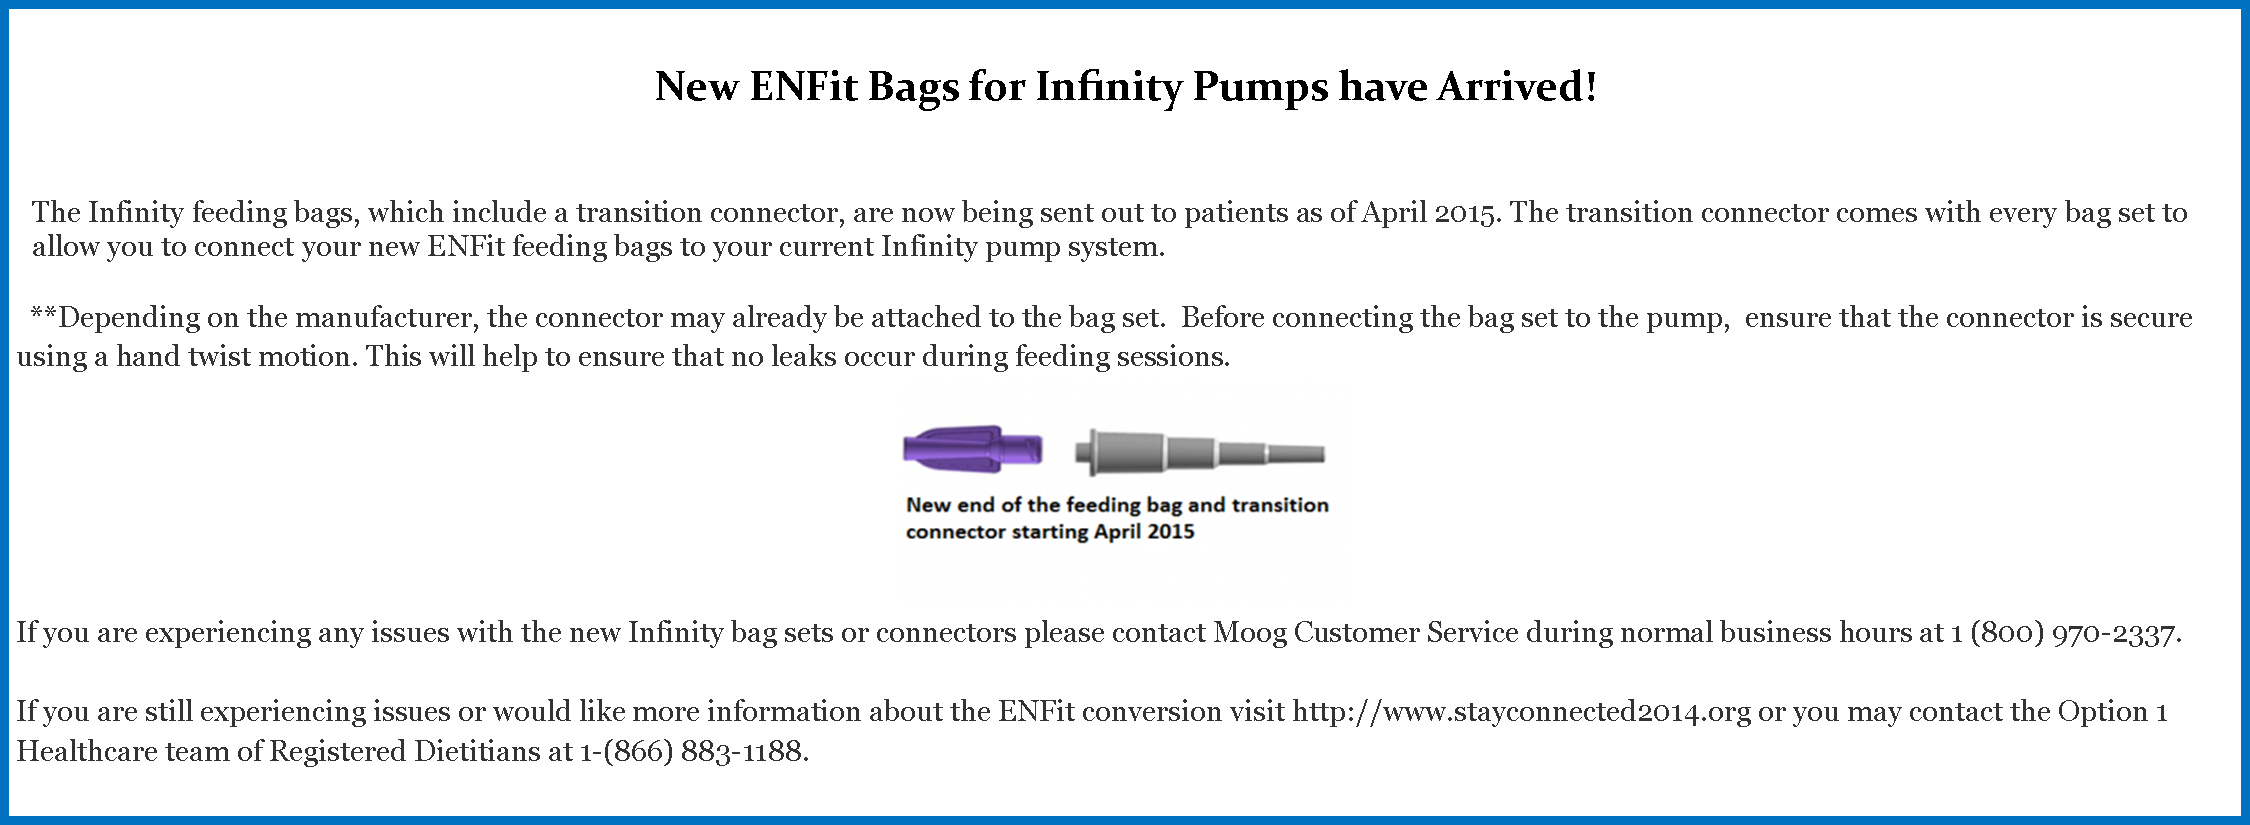 New-Enfit-bags-ns